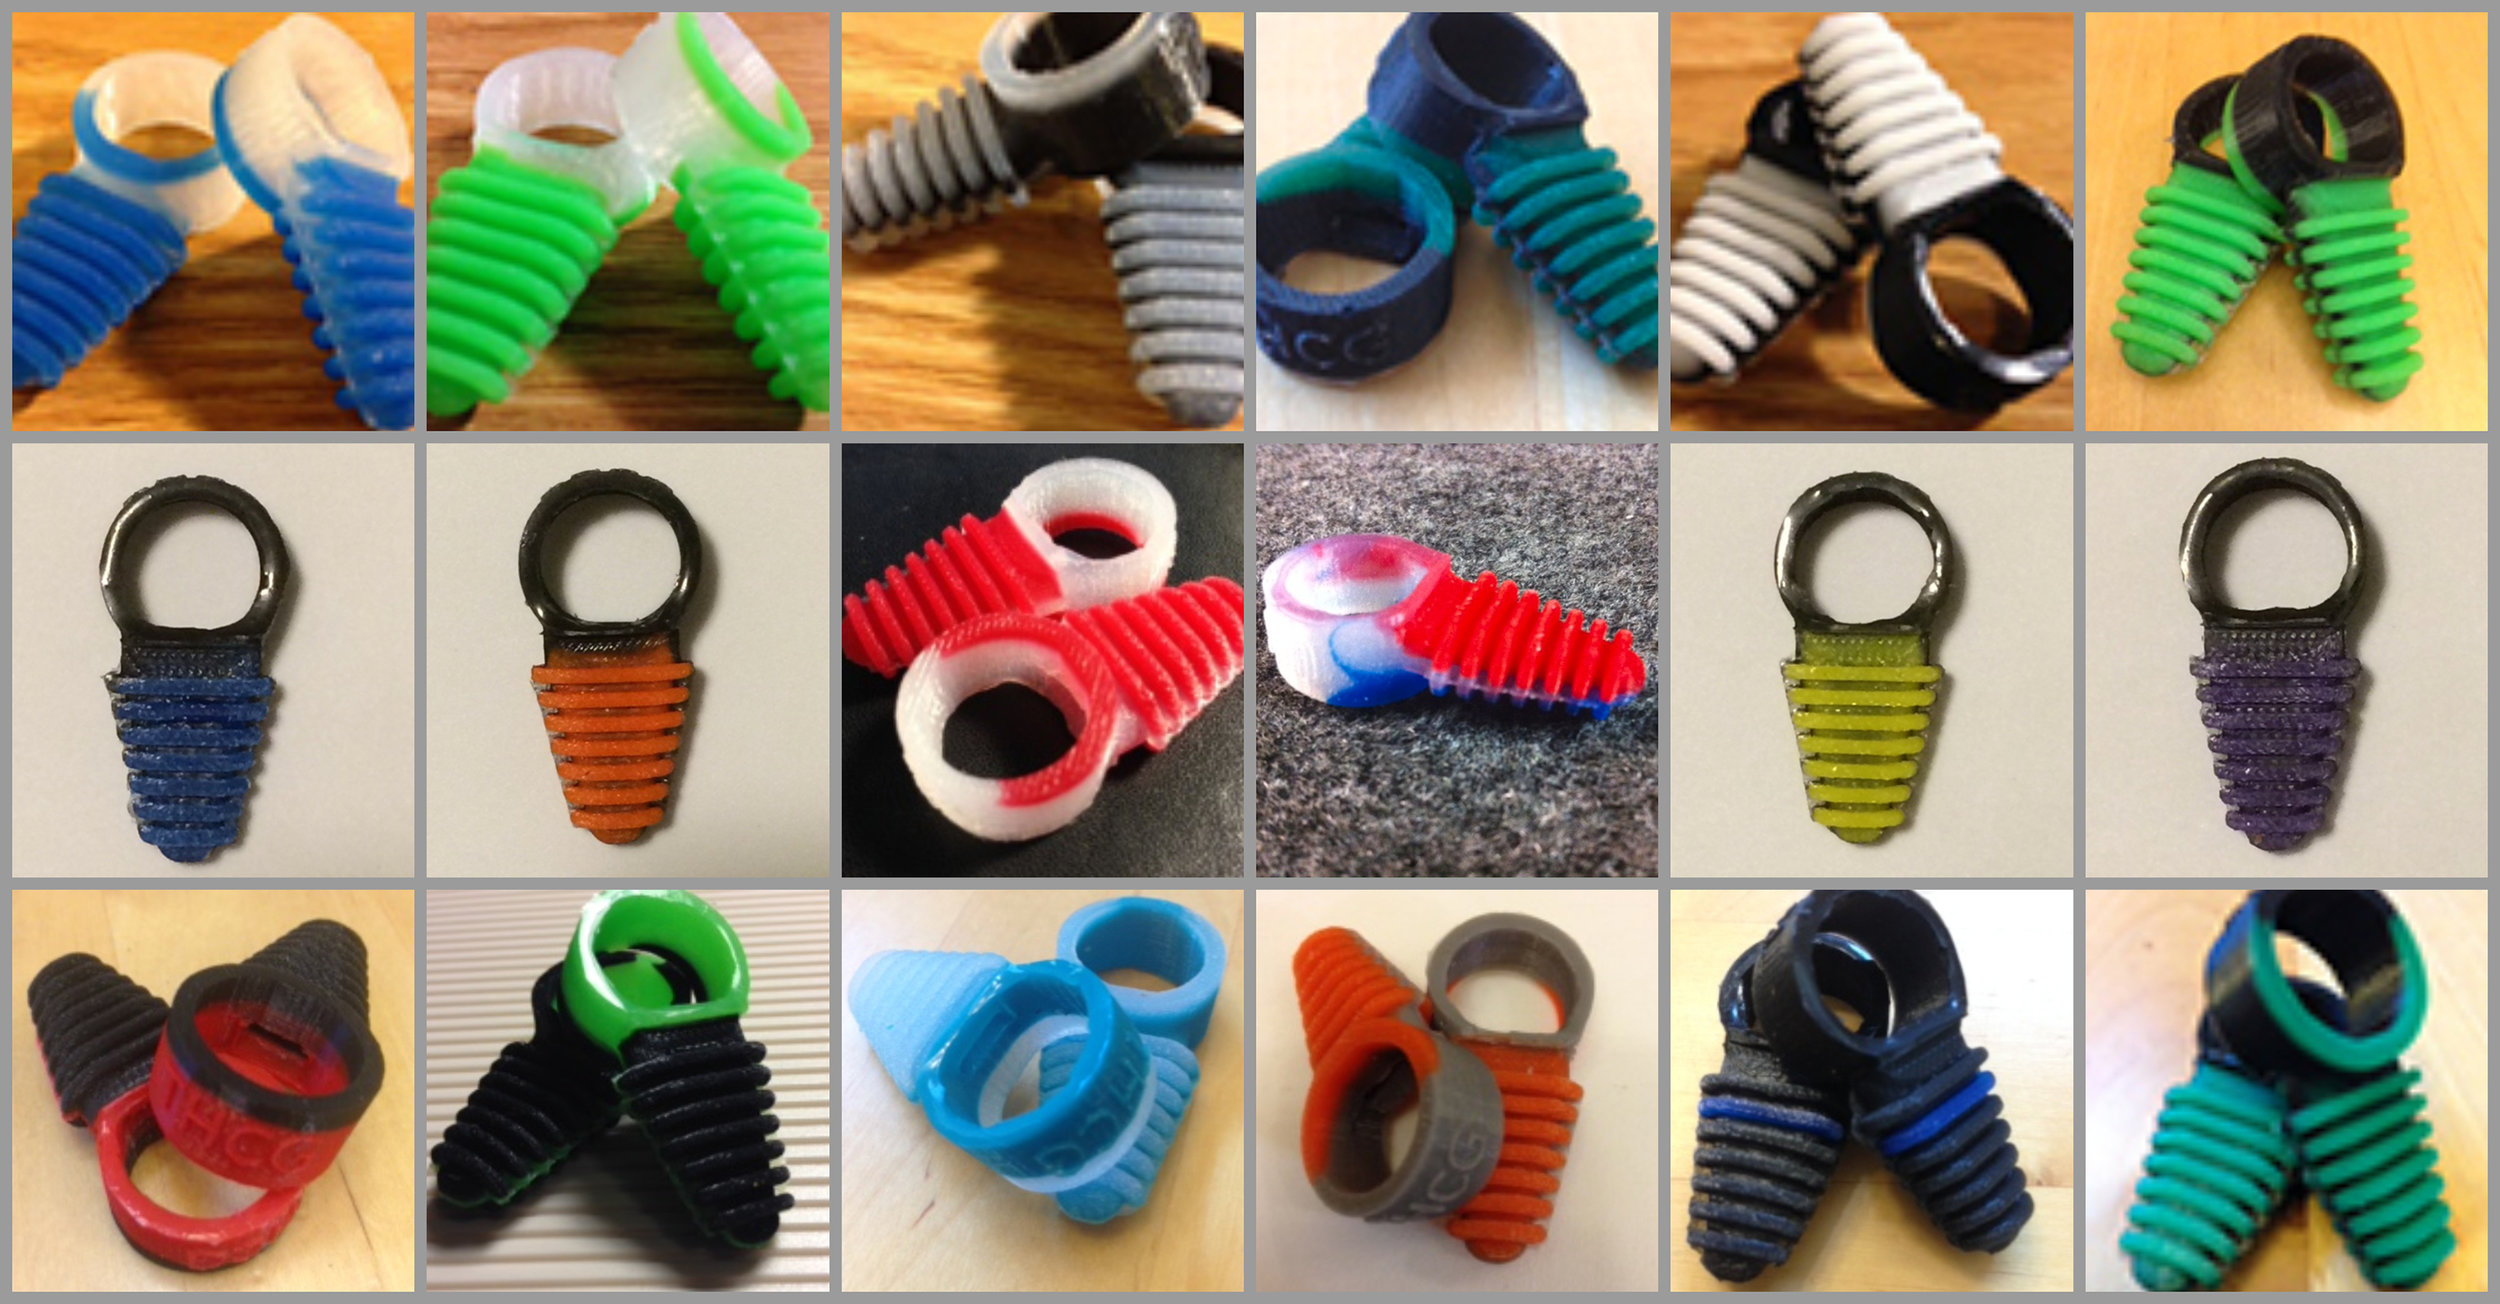 Banded Ribbed Trigger Grips are available in multiple color combinations that will match your equipment. Two per package $5.99 at Tackle Warehouse. More colors are available at the Trigger Happy Comfort Grips website; the link is below.